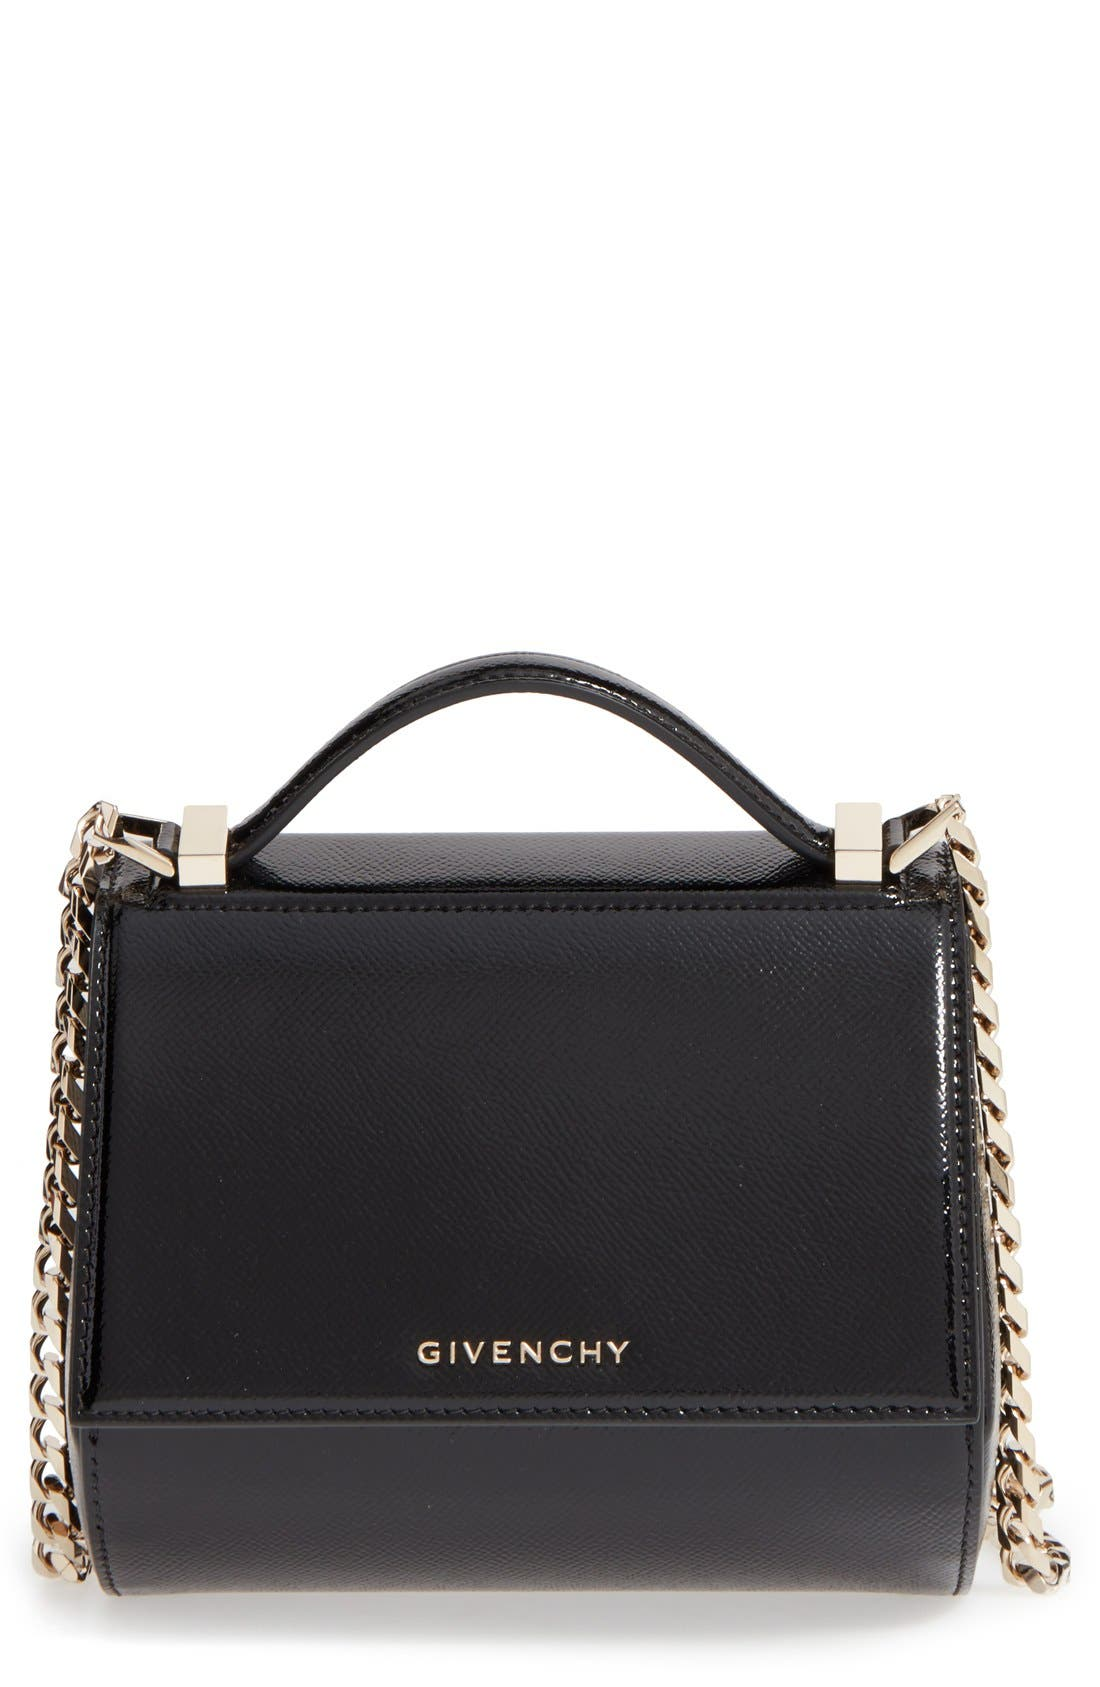 Main Image - Givenchy 'Mini Pandora Box' Leather Shoulder Bag